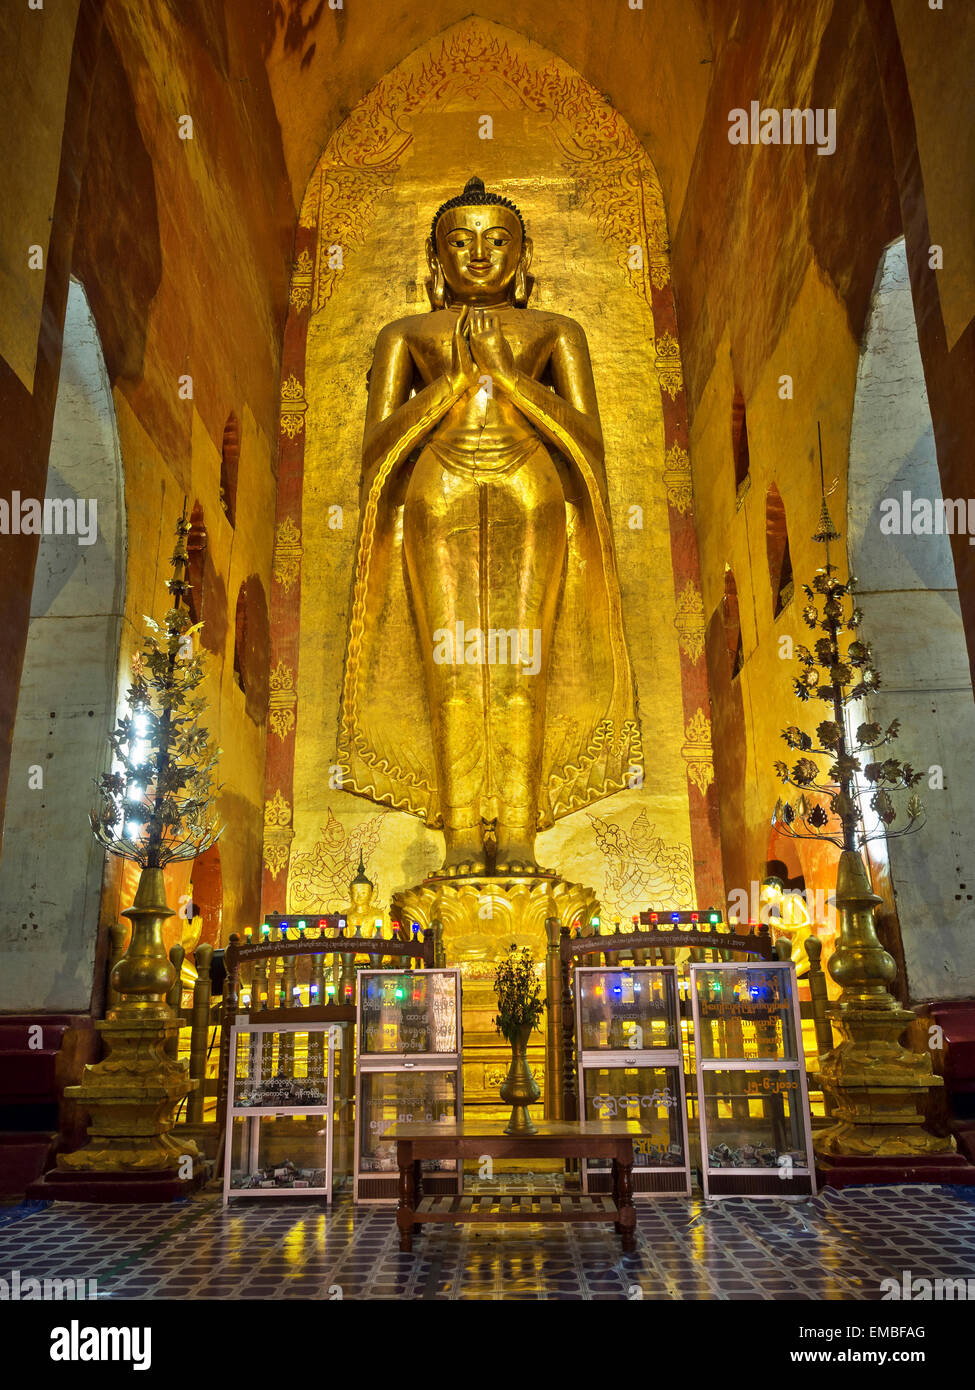 Revered standing Buddha statue in the ancient Ananda temple in Bagan, Myanmar (Burma). - Stock Image